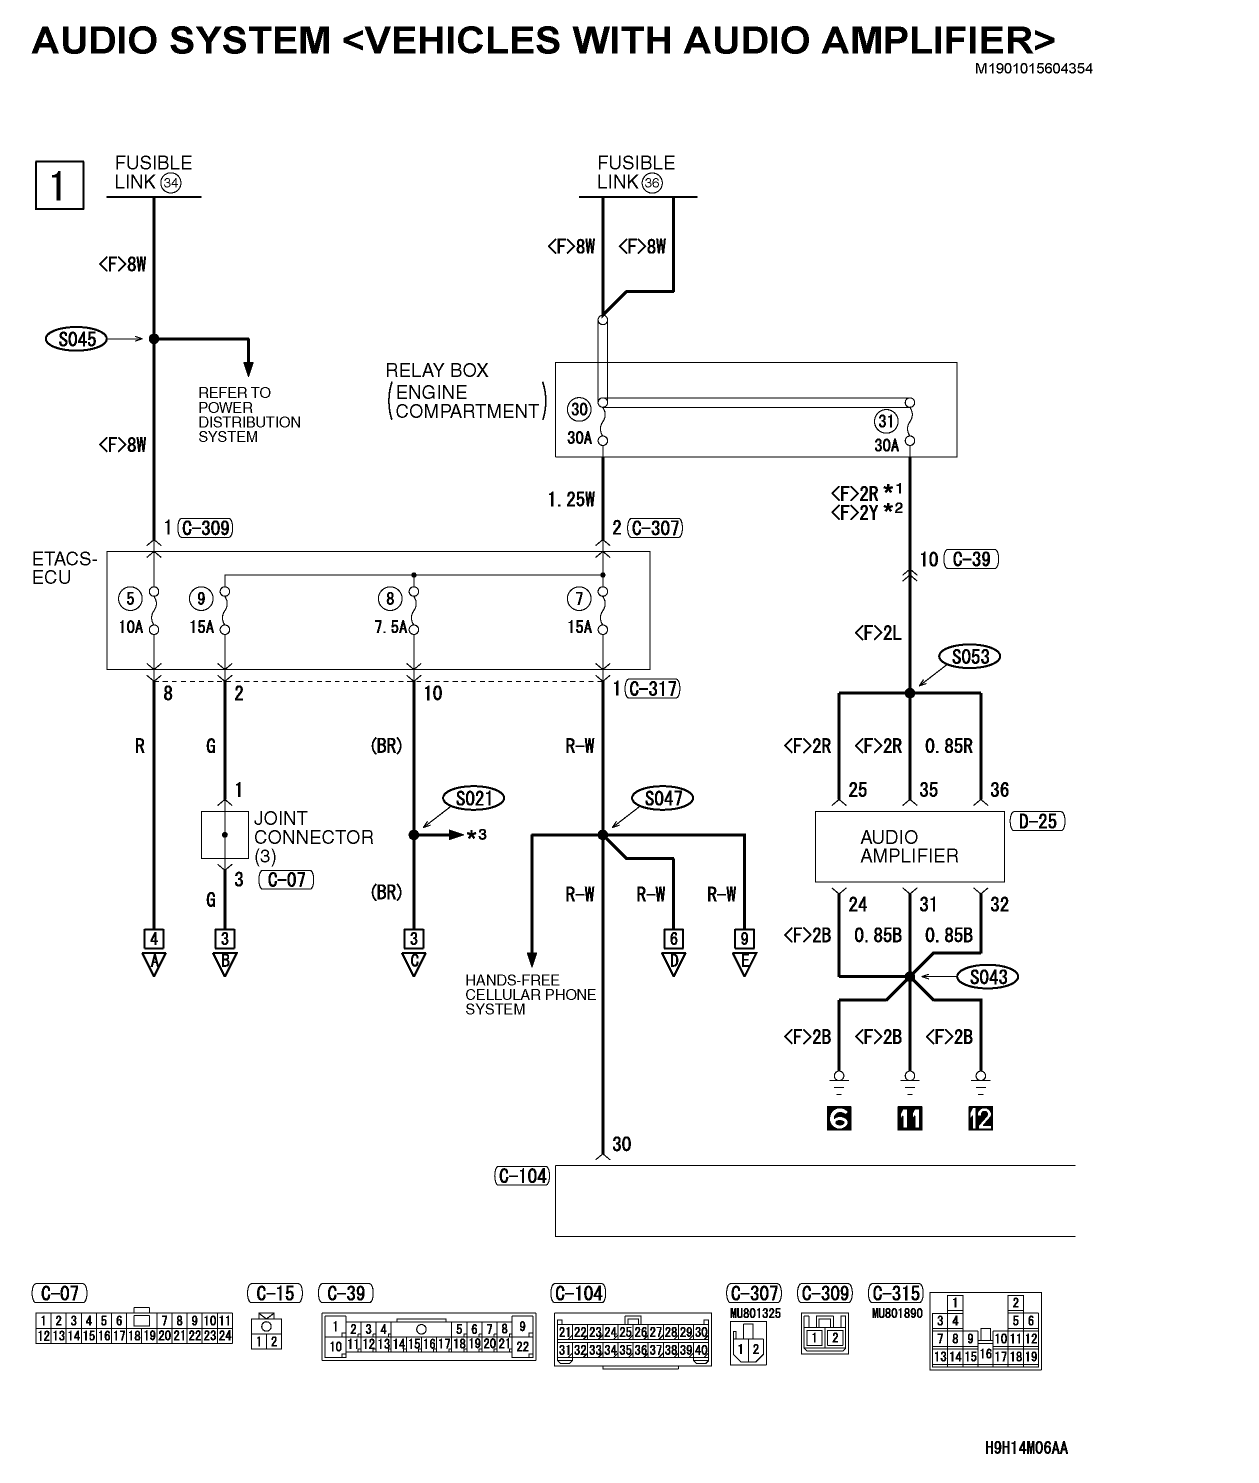 Diagram 2006 Mitsubishi Lancer Stereo Wiring Diagram Full Version Hd Quality Wiring Diagram Diagrambooksr Laserdrone It